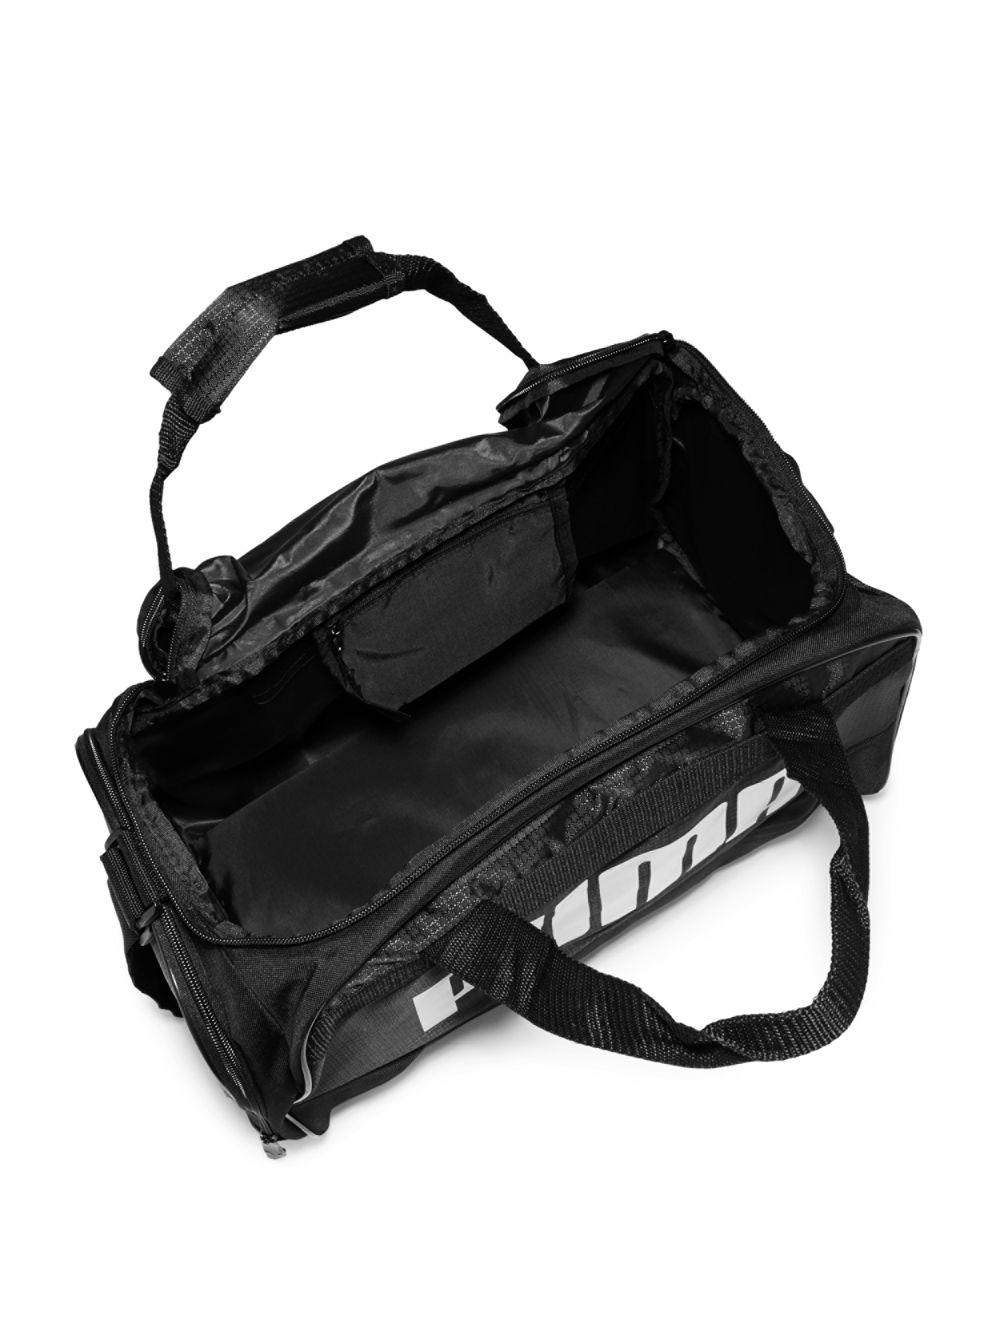 00ef2180108 PUMA - Black Evercat Transformation 3 Duffel Bag for Men - Lyst. View  fullscreen